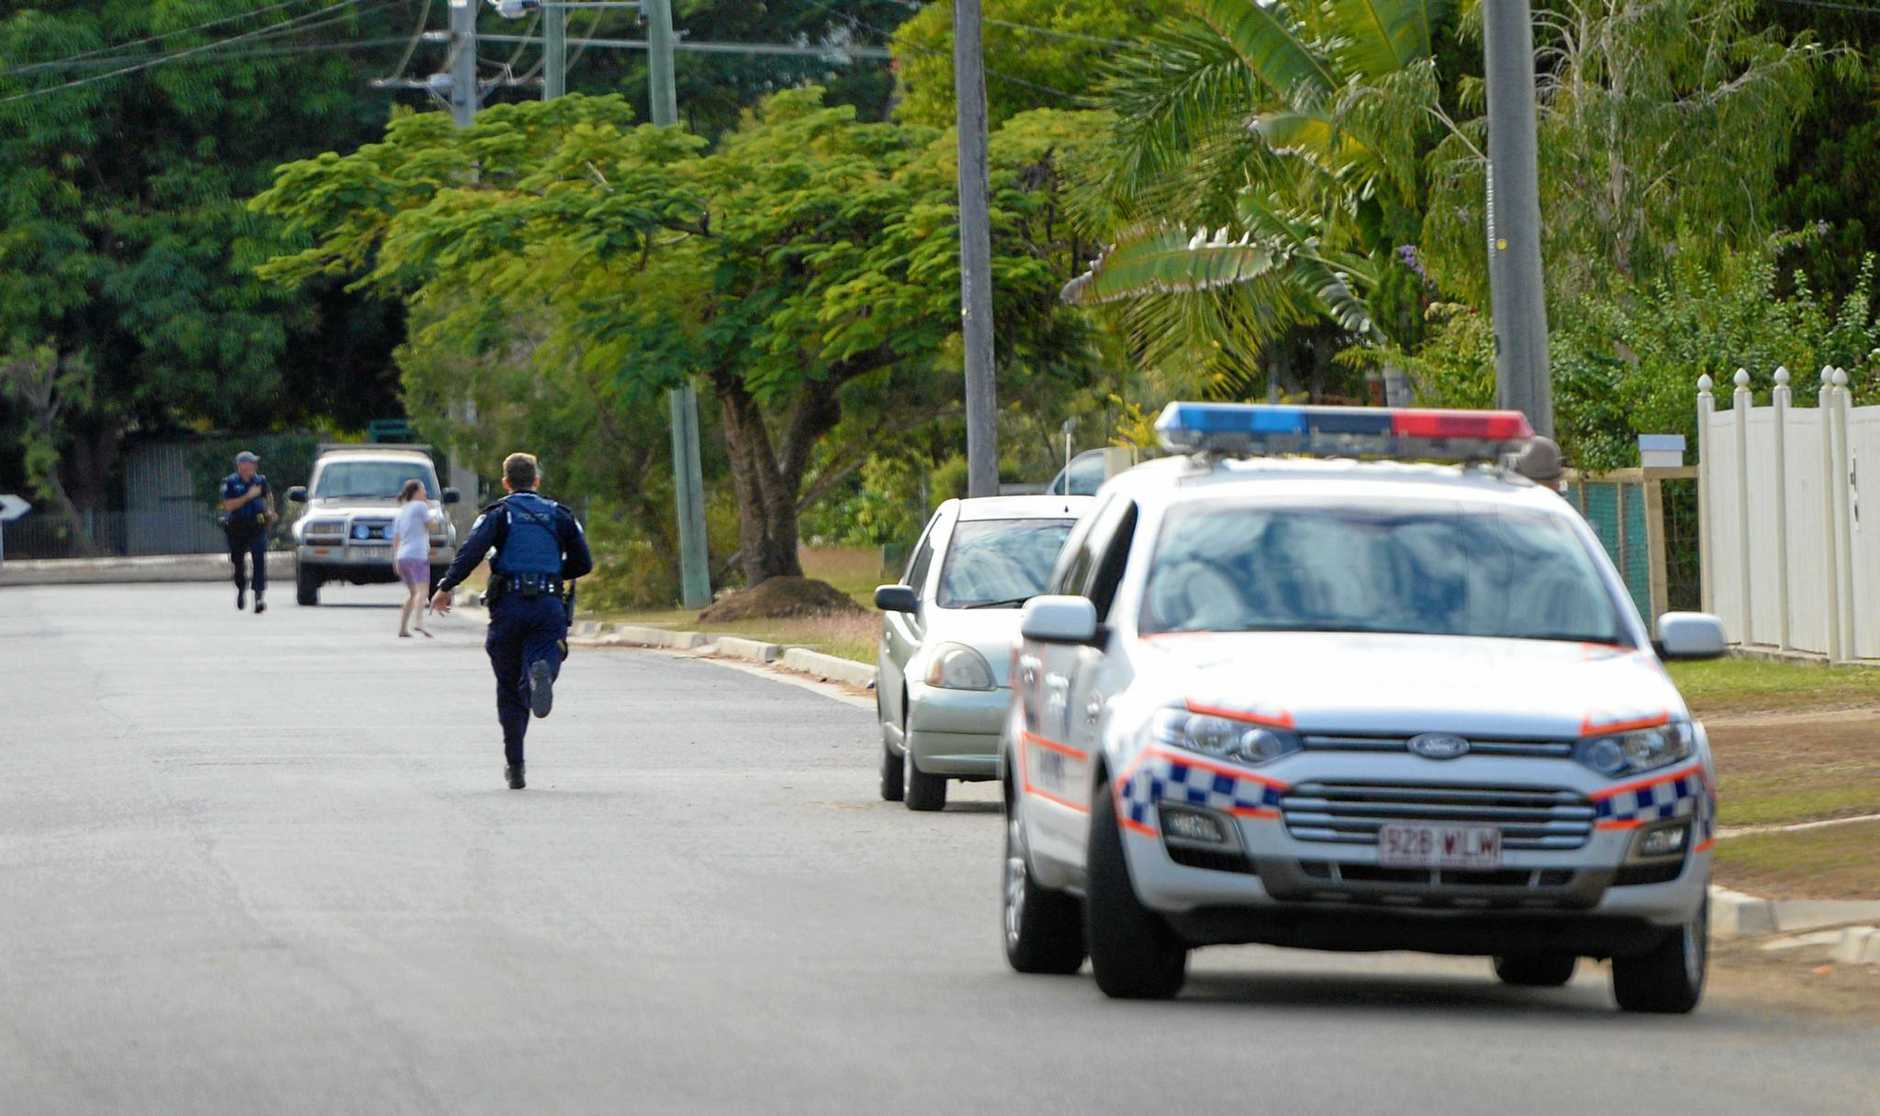 Police officers run to recapture a man who escaped custody in handcuffs on Thackeray Street Park Avenue.